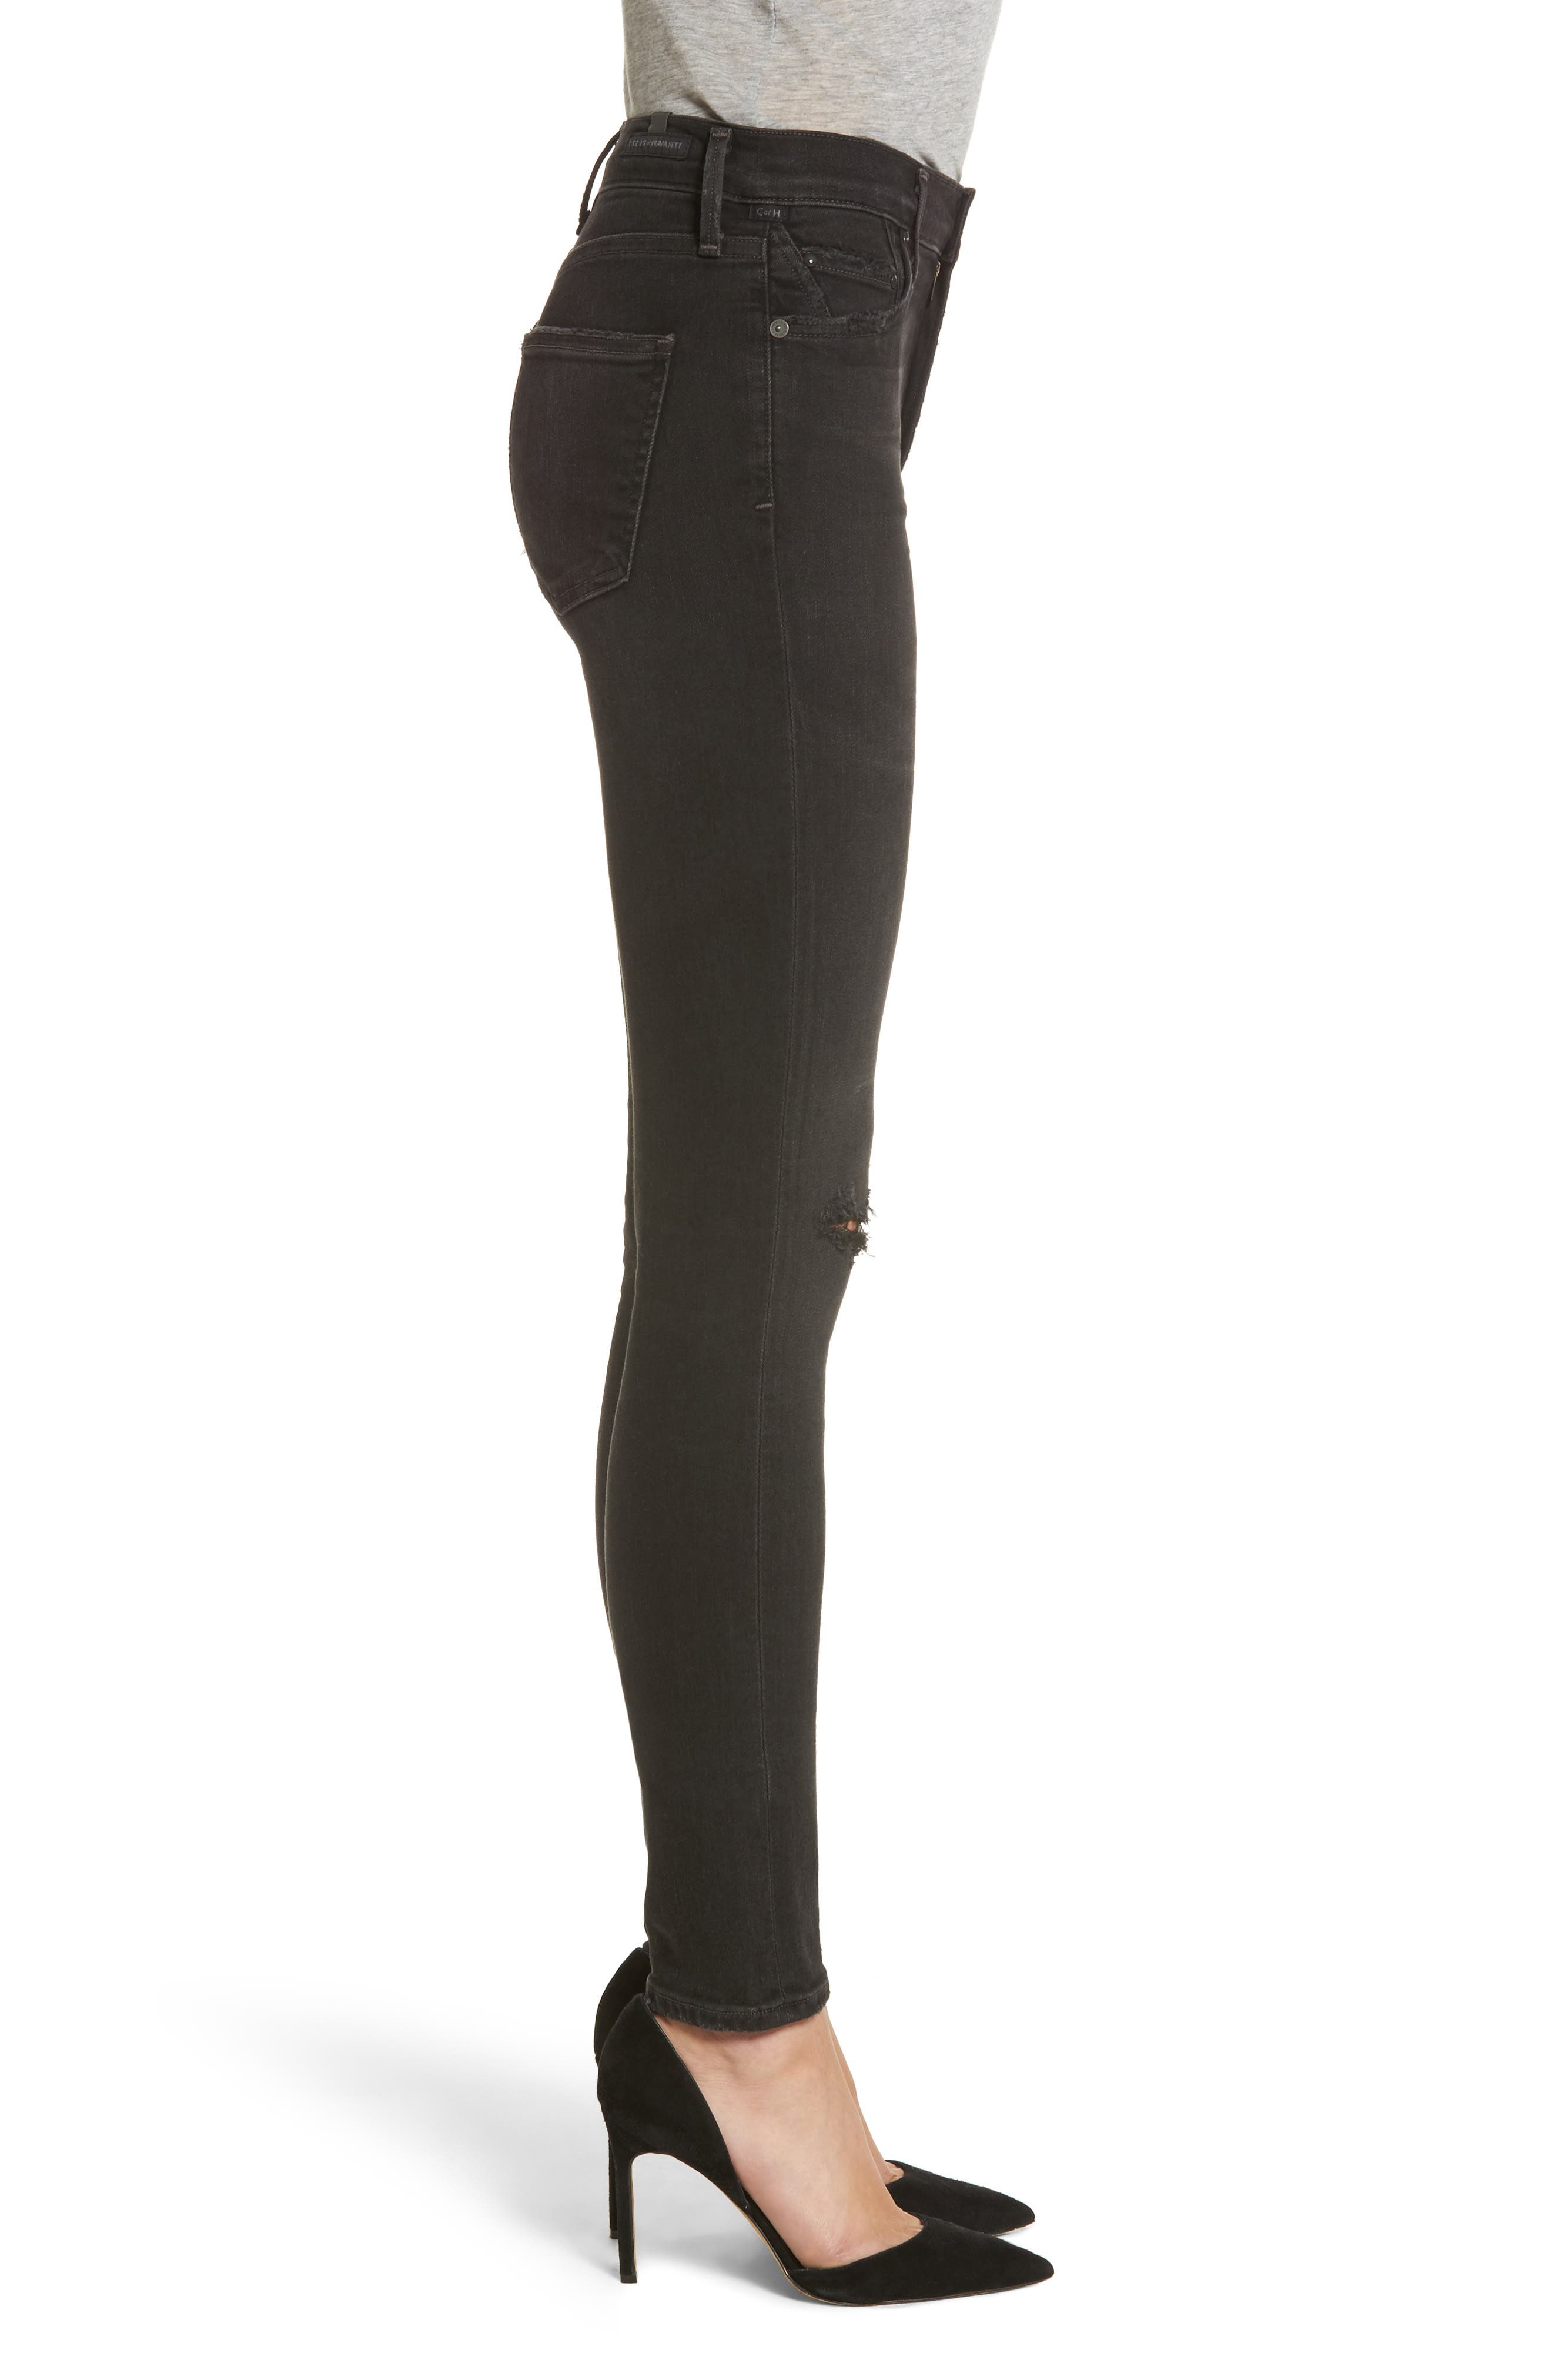 Rocket High Waist Skinny Jeans,                             Alternate thumbnail 3, color,                             Distressed Darkness